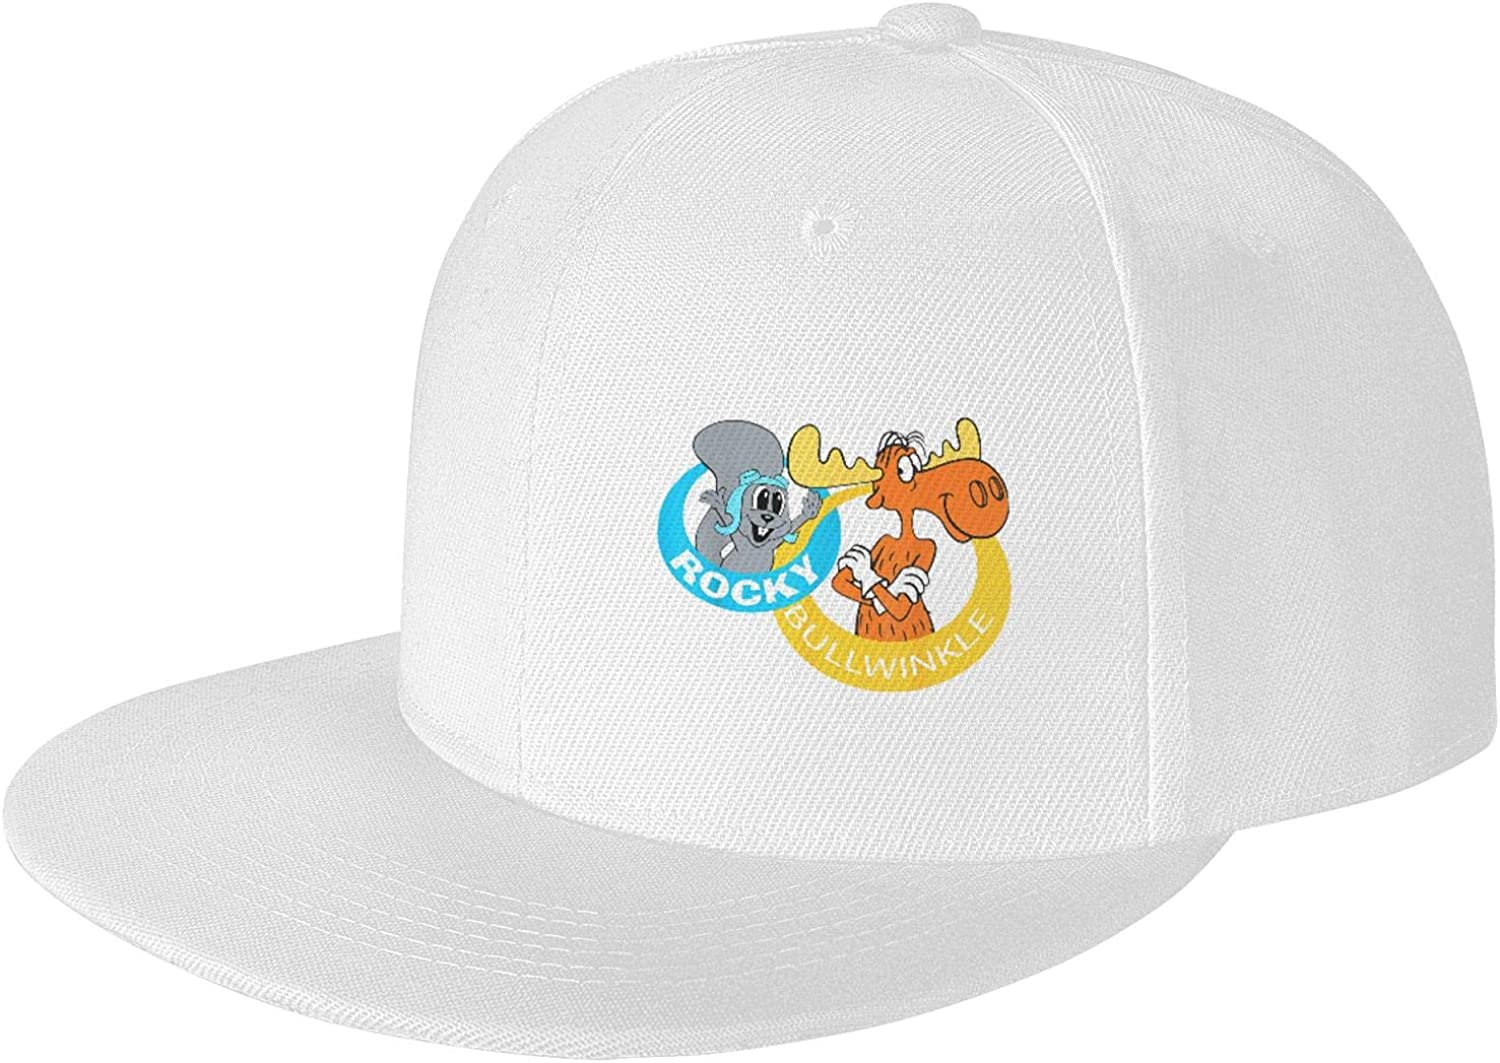 Rocky and Bullwinkle Cowboy Hat for Men and Women Adjustable Unisex Hat Fashion Drawstring Girl with Cute Graphics White